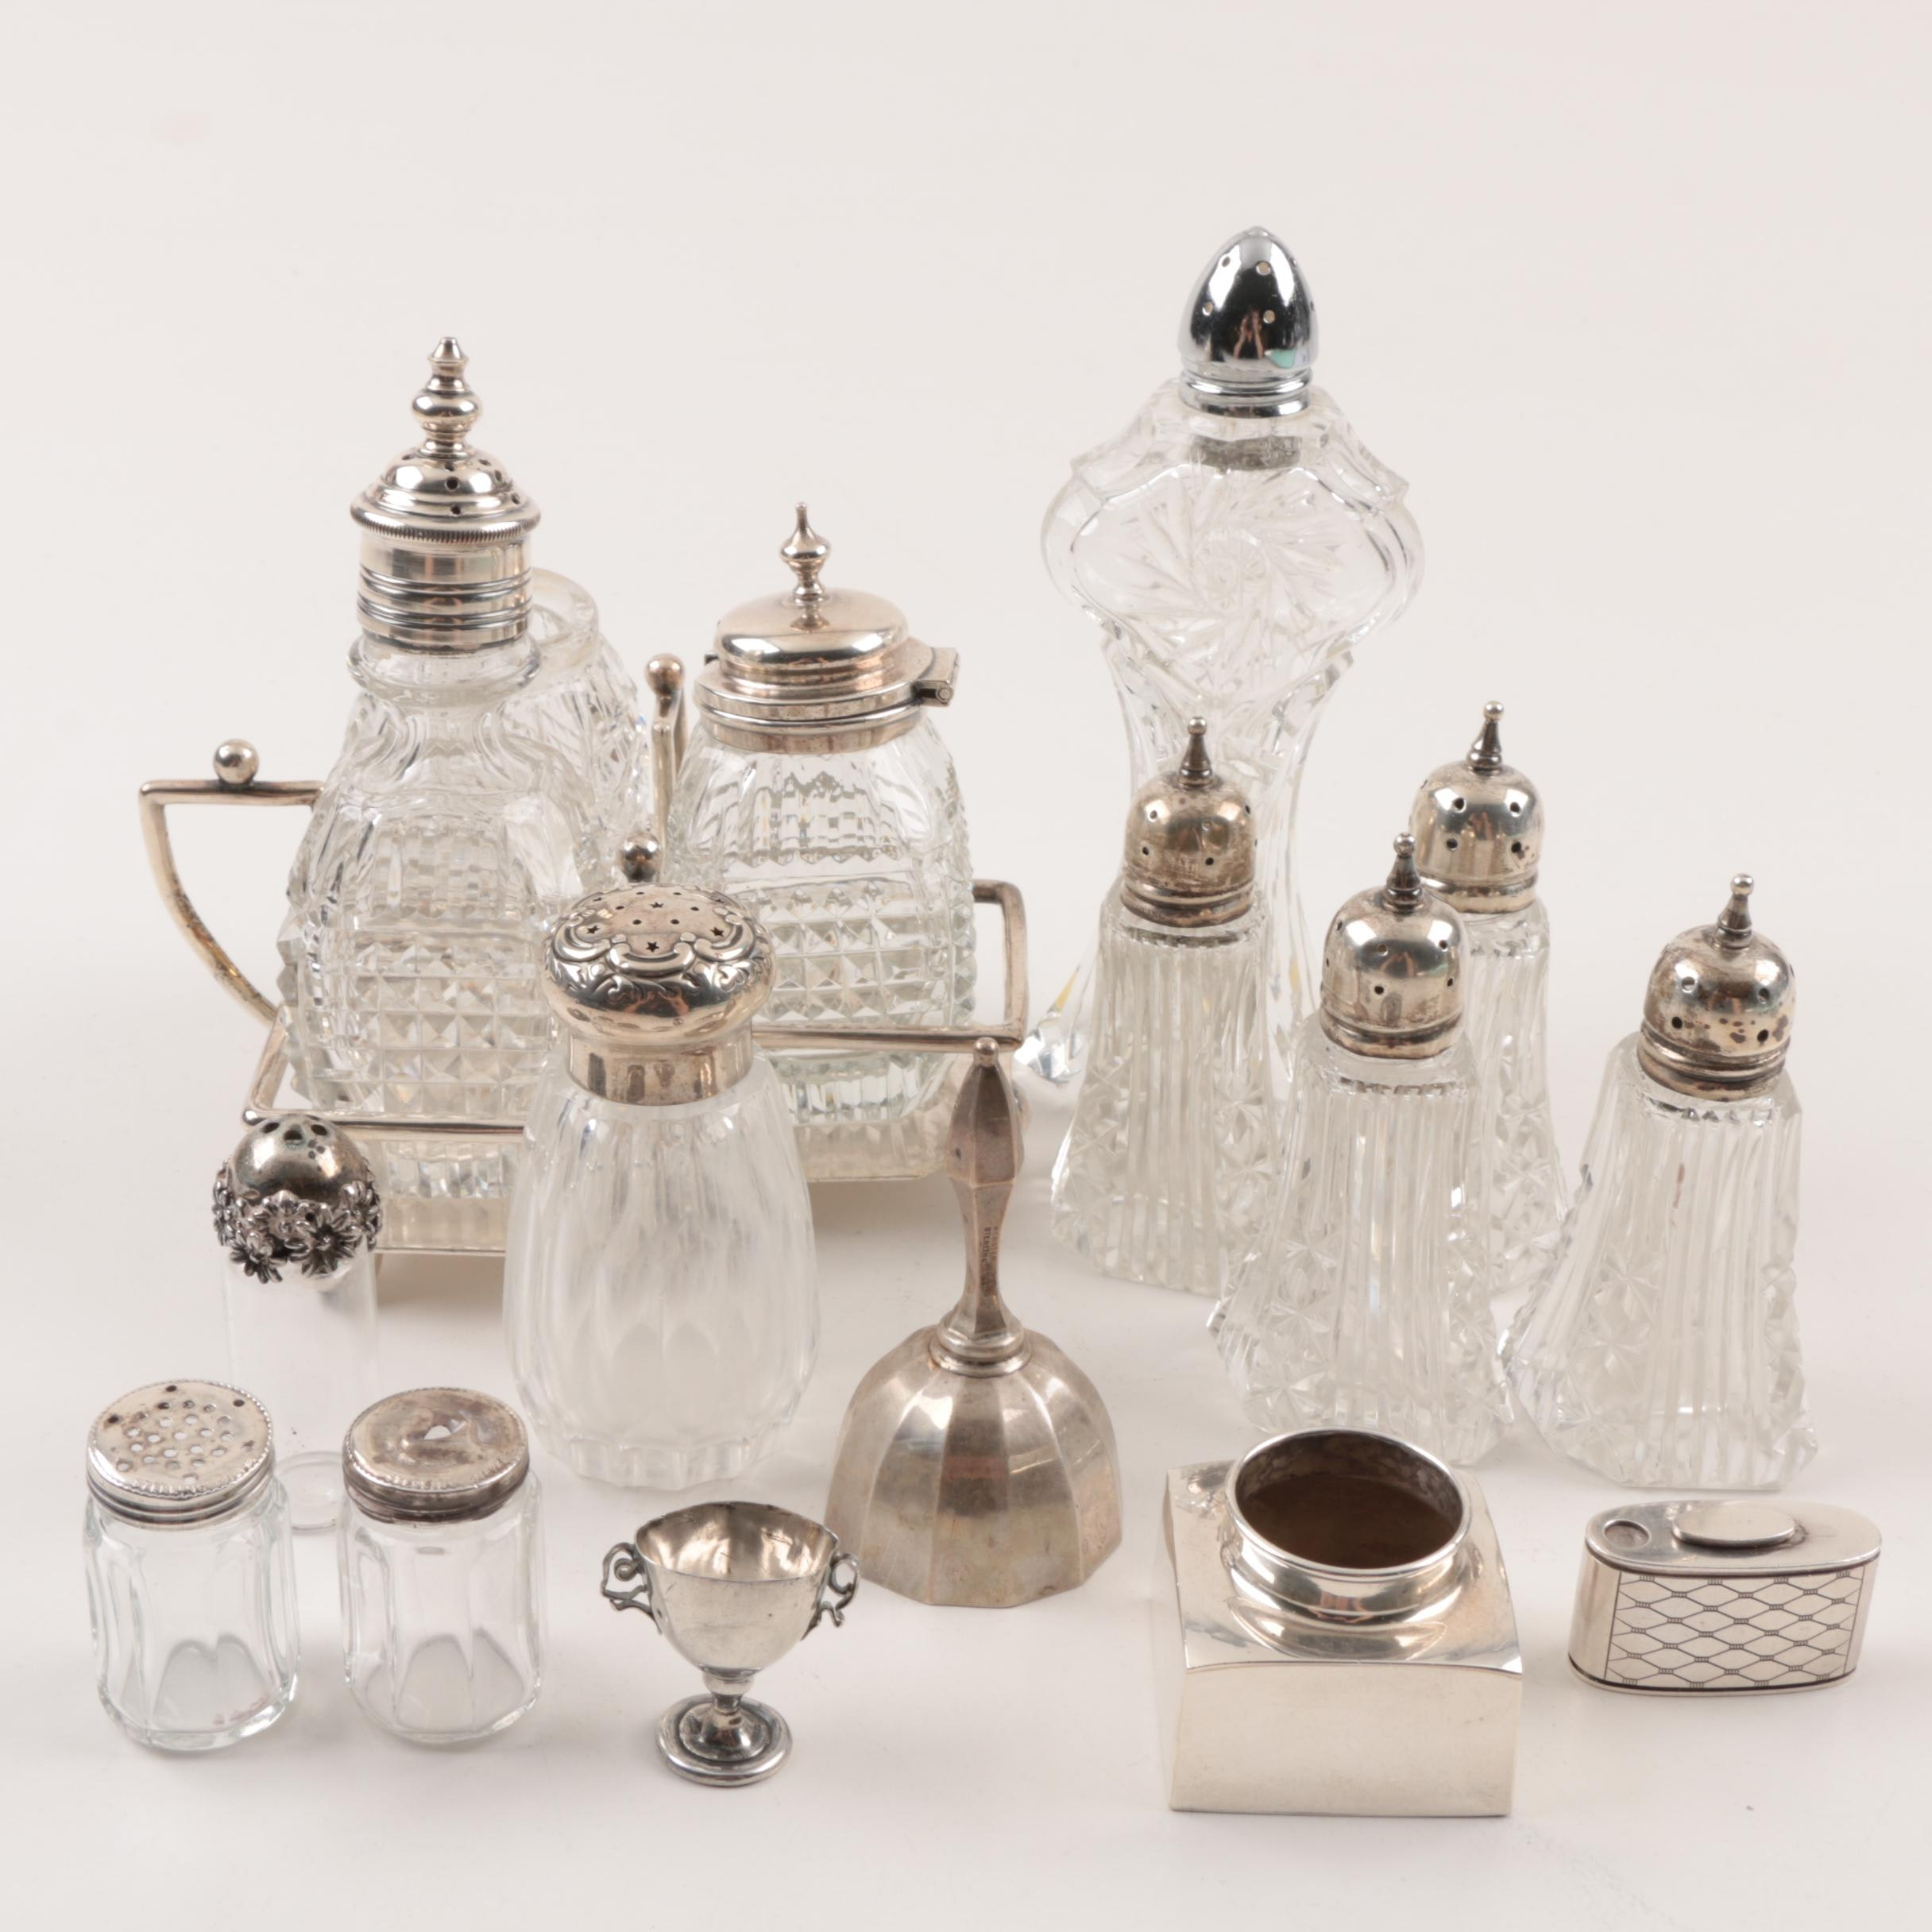 Collection of Sterling Silver and Glass Castors and Table Accessories